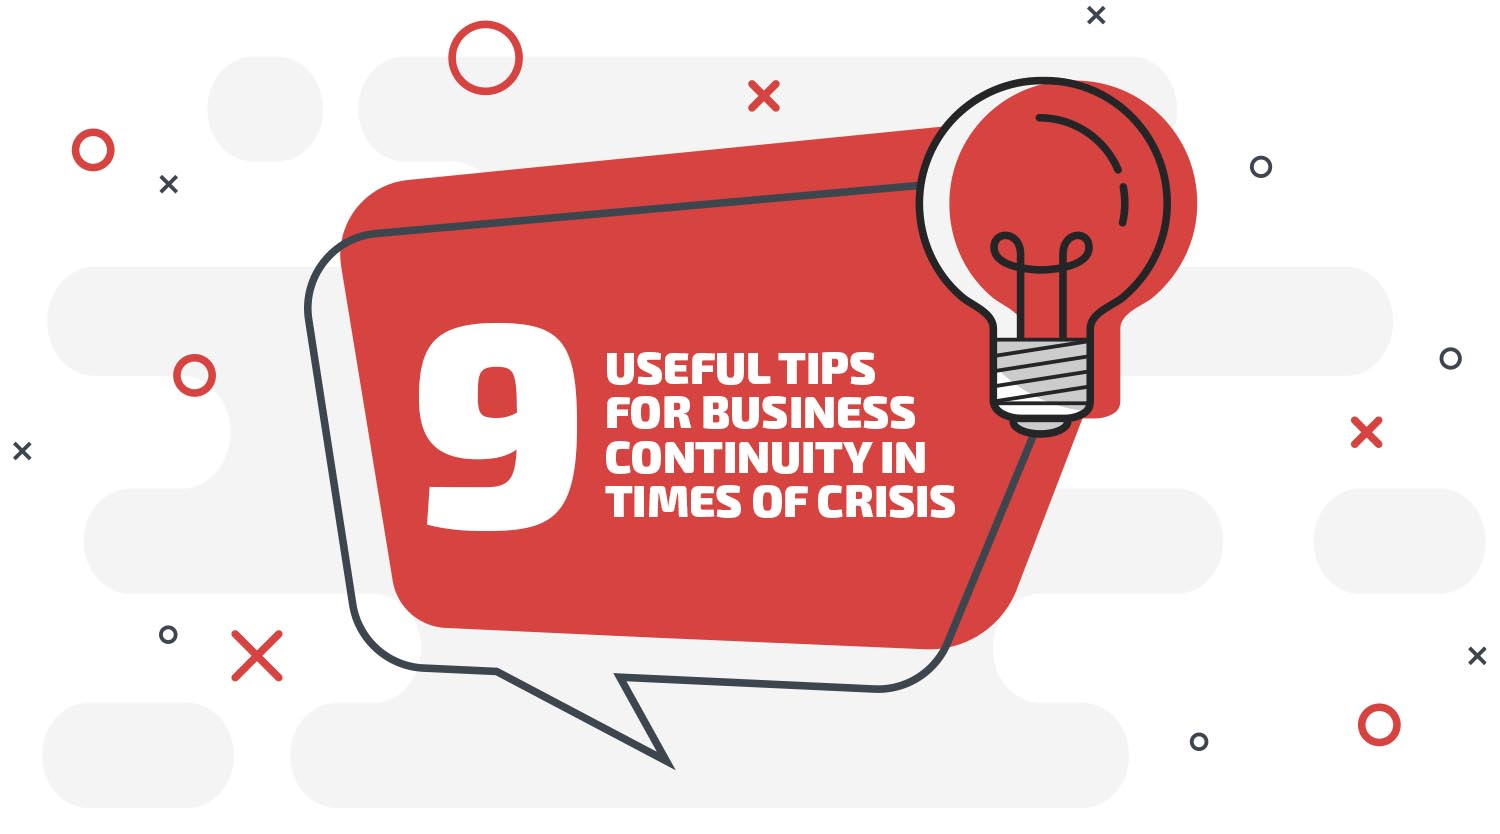 9 Useful Tips for Business Continuity in Times of Crisis